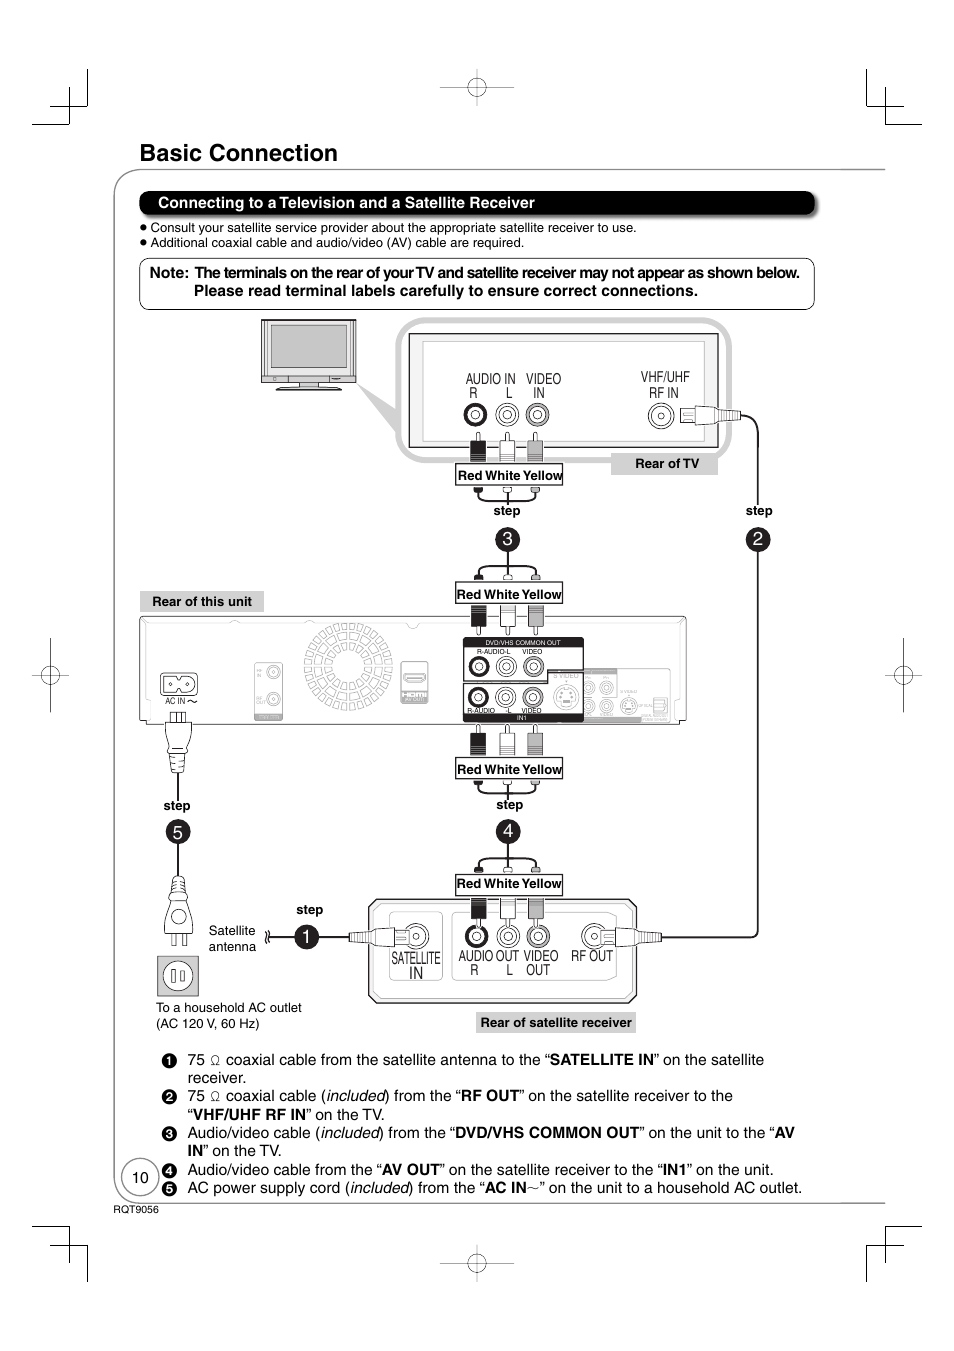 Basic Connection Satellite In Audio Out Video Panasonic Diga Dmr Coax Cable And Dish Wiring Diagrams Ez48v User Manual Page 10 100